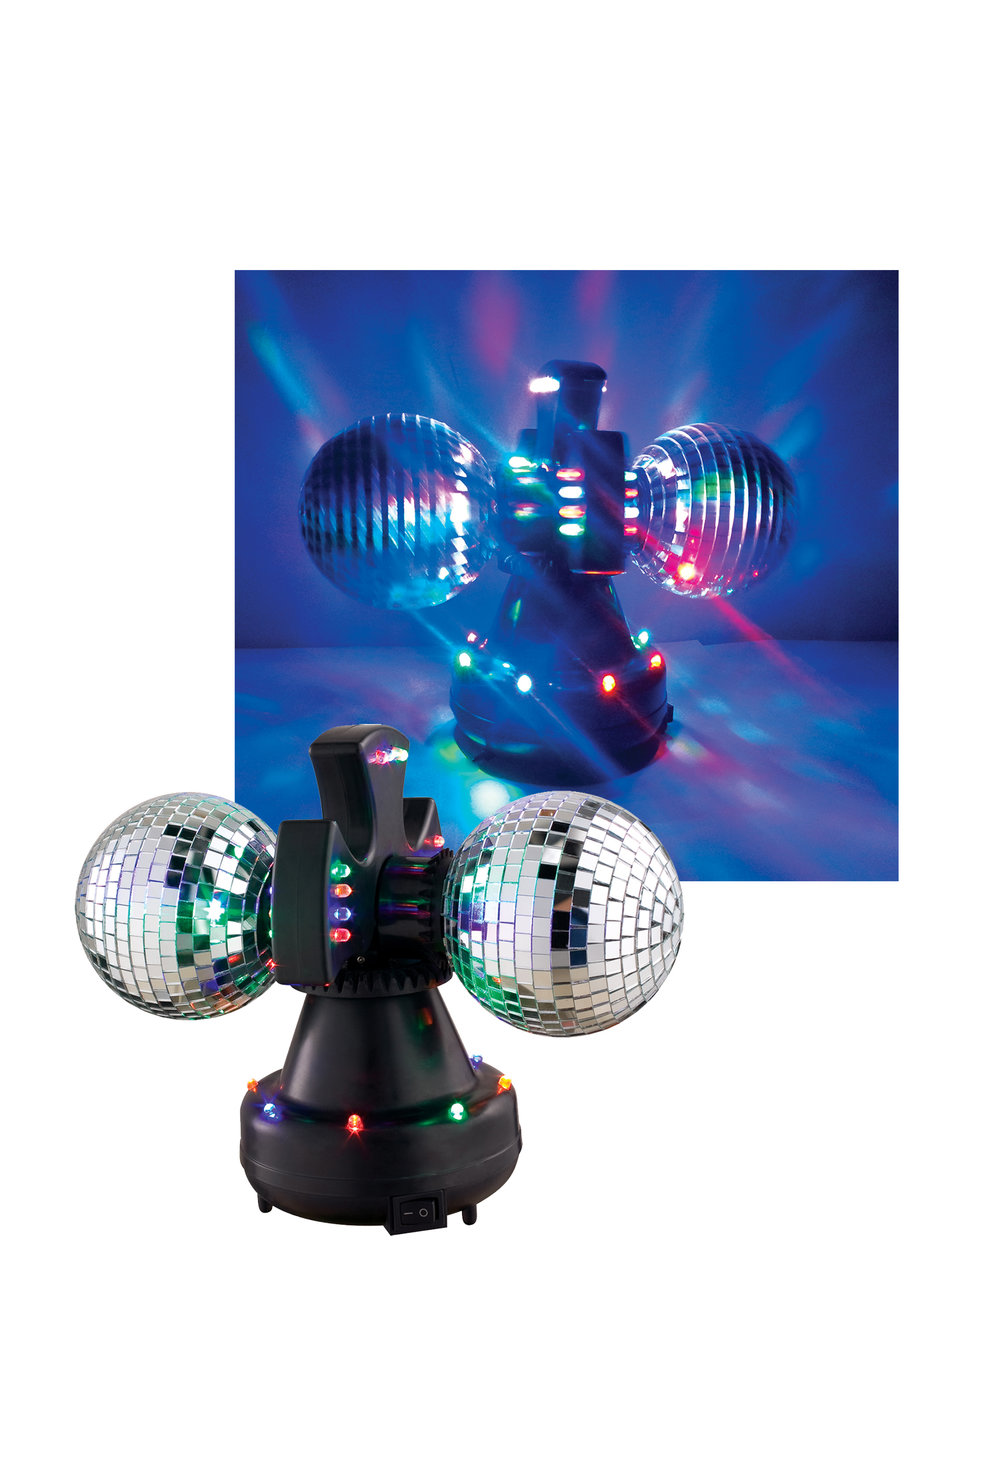 V0235 MIRROR BALL DUO - Twin Rotating Mirror Balls with 30 Multi-Colored LEDs